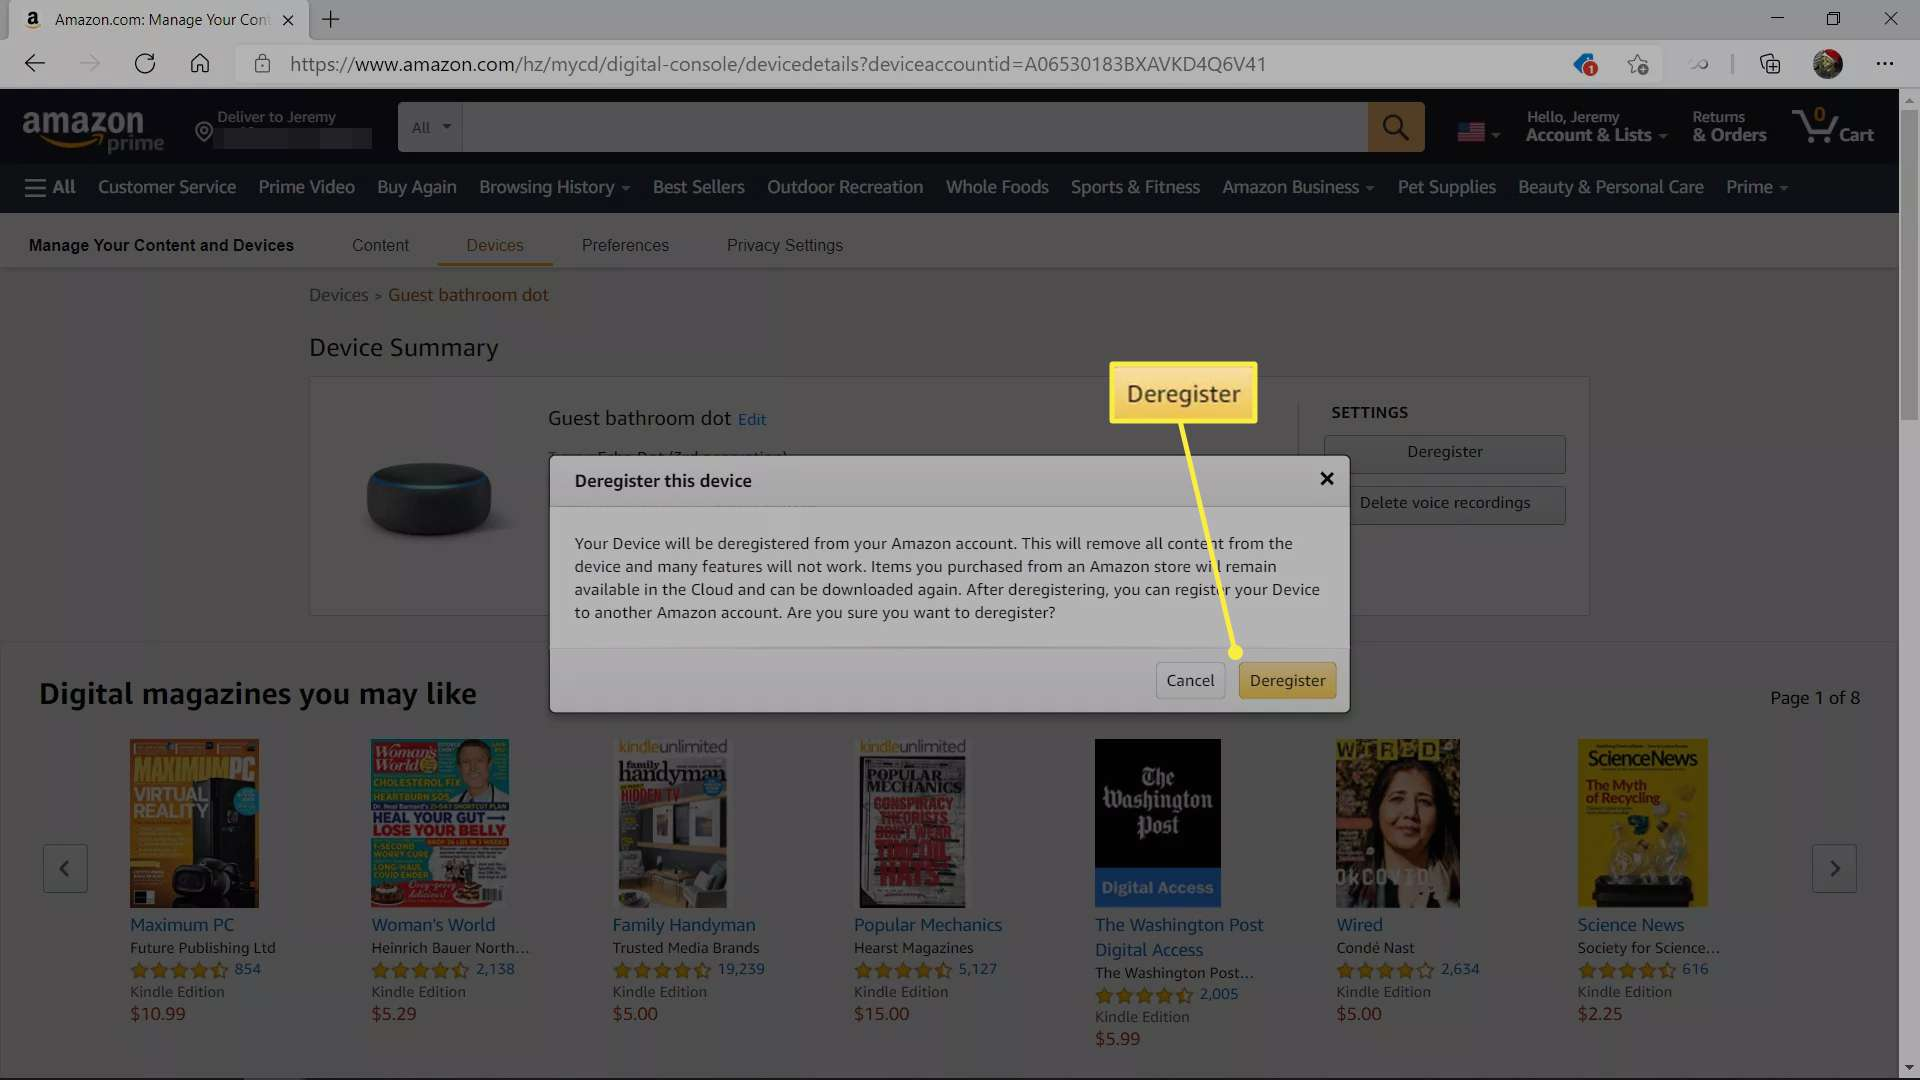 Deregister highlighted in the Amazon device deregister warning box.